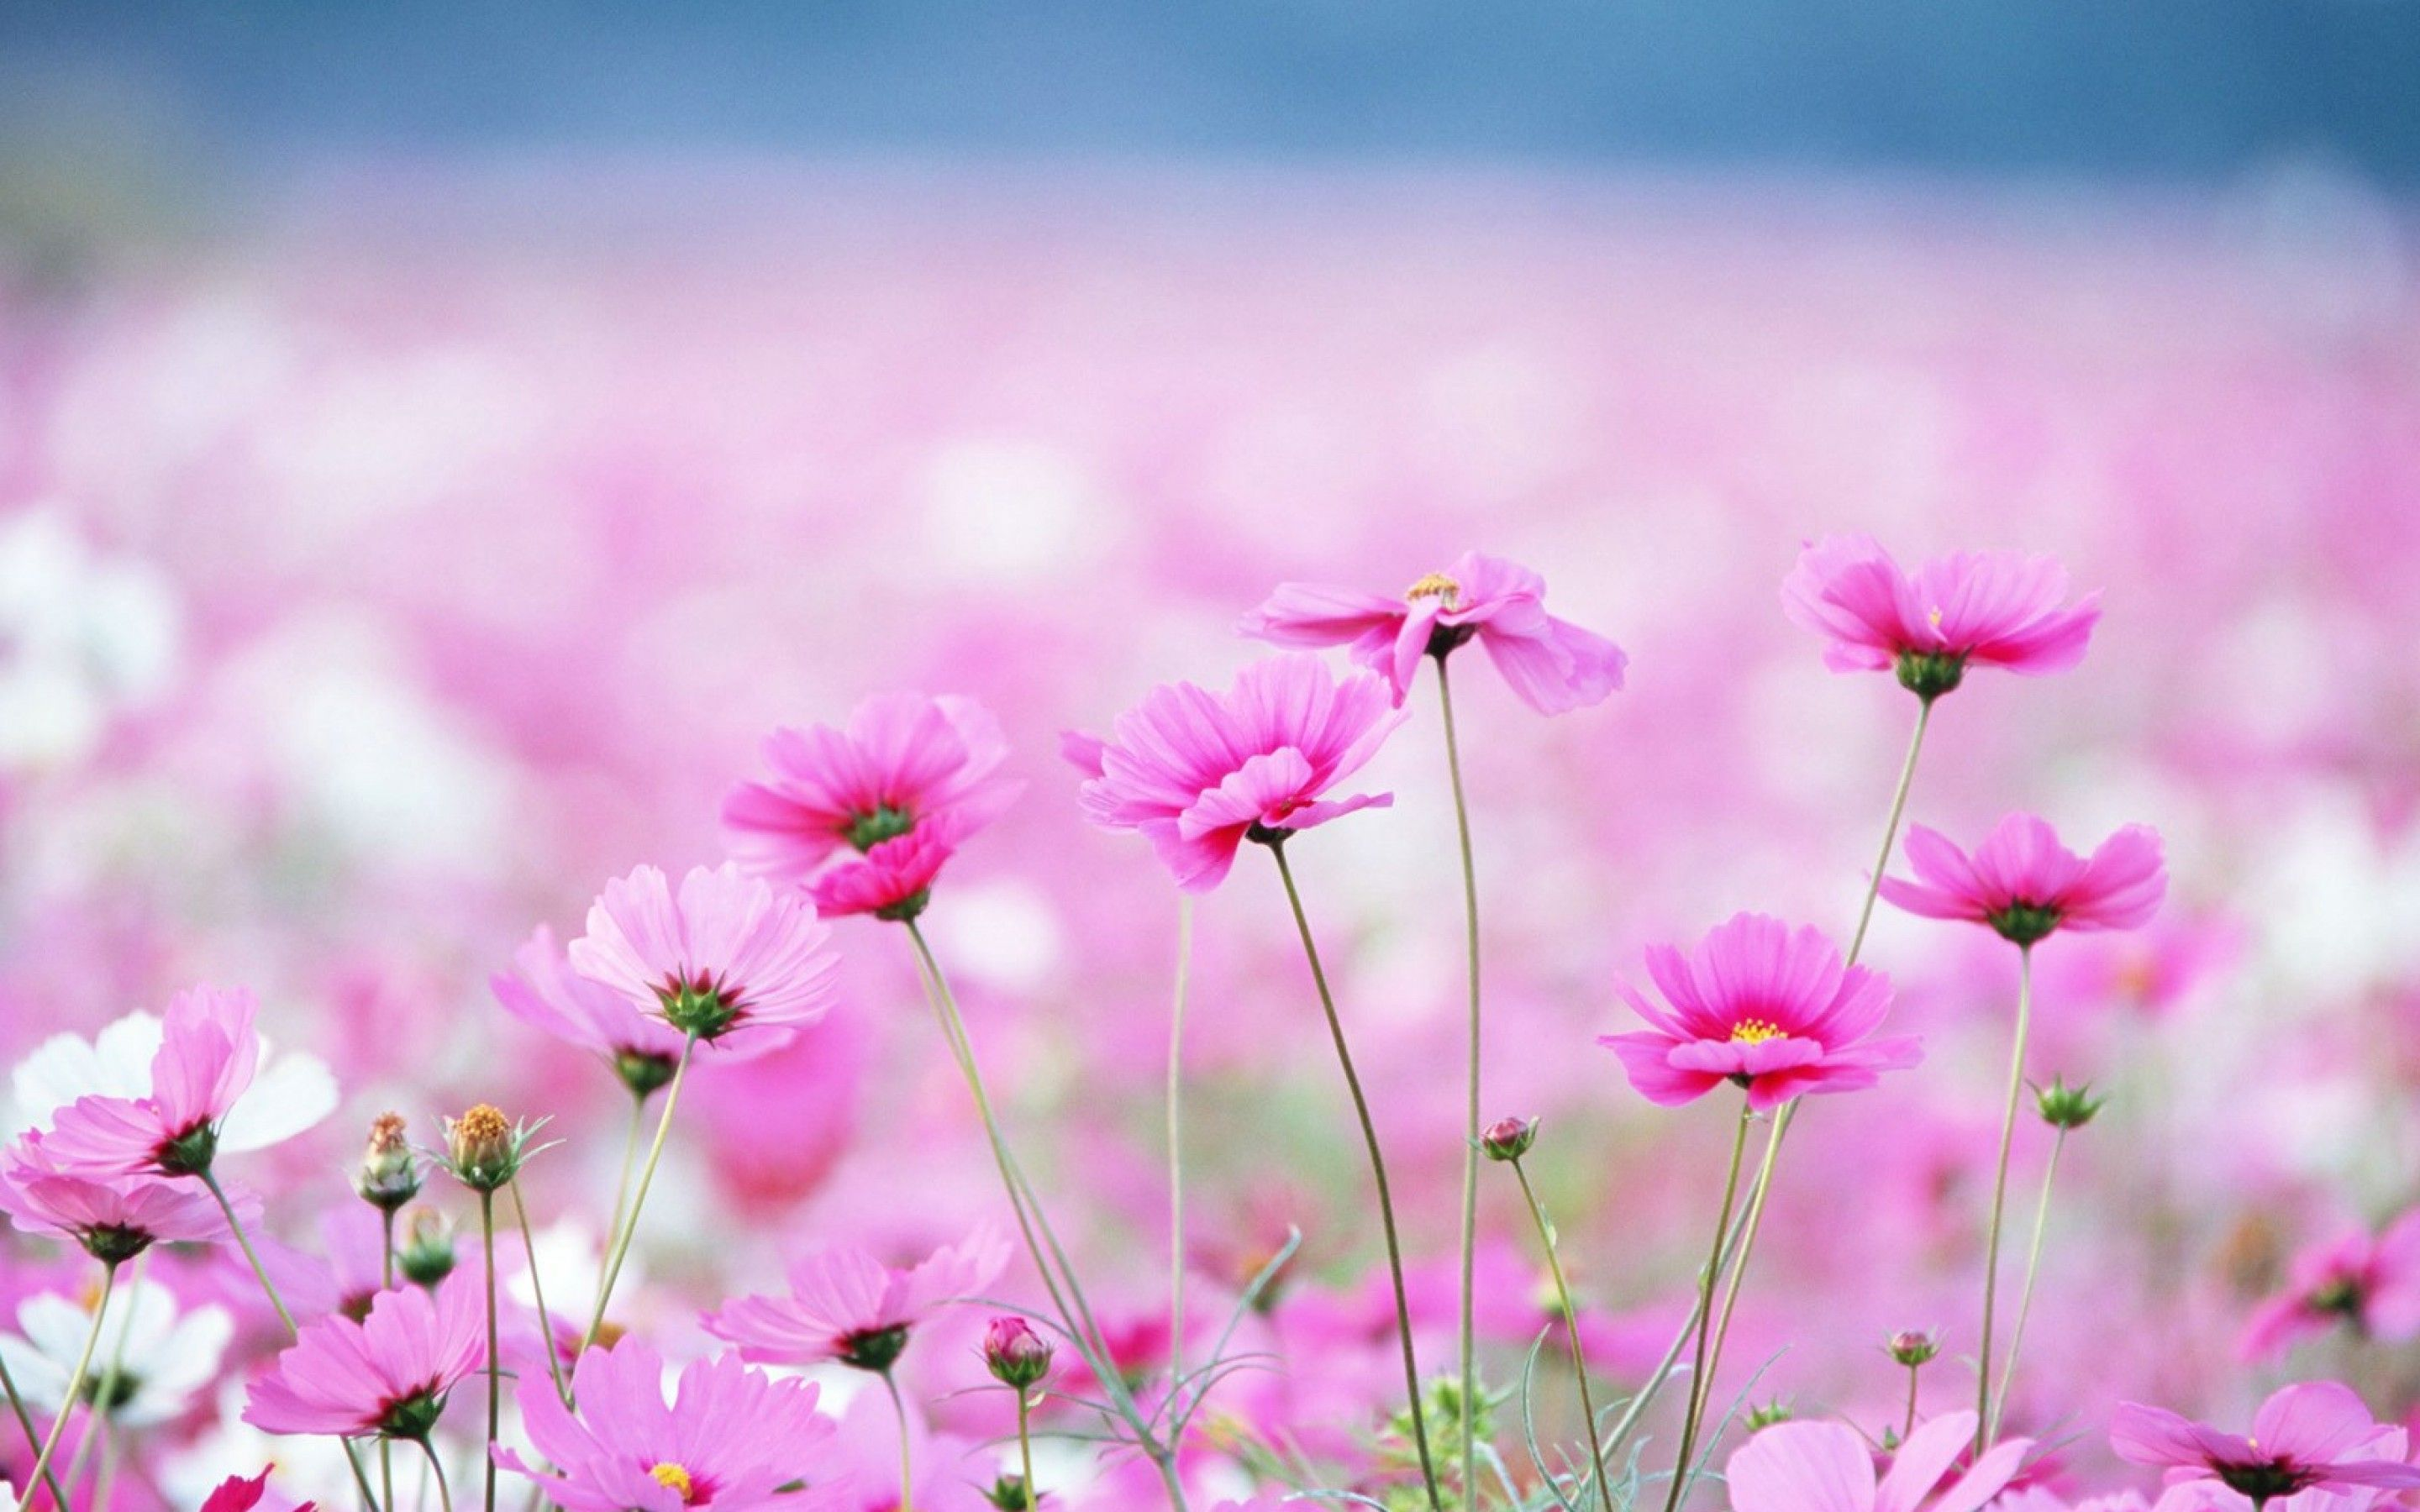 Song ng tm vi google flowers tea coffe book pinterest explore pretty flowers amazing flowers and more mightylinksfo Images